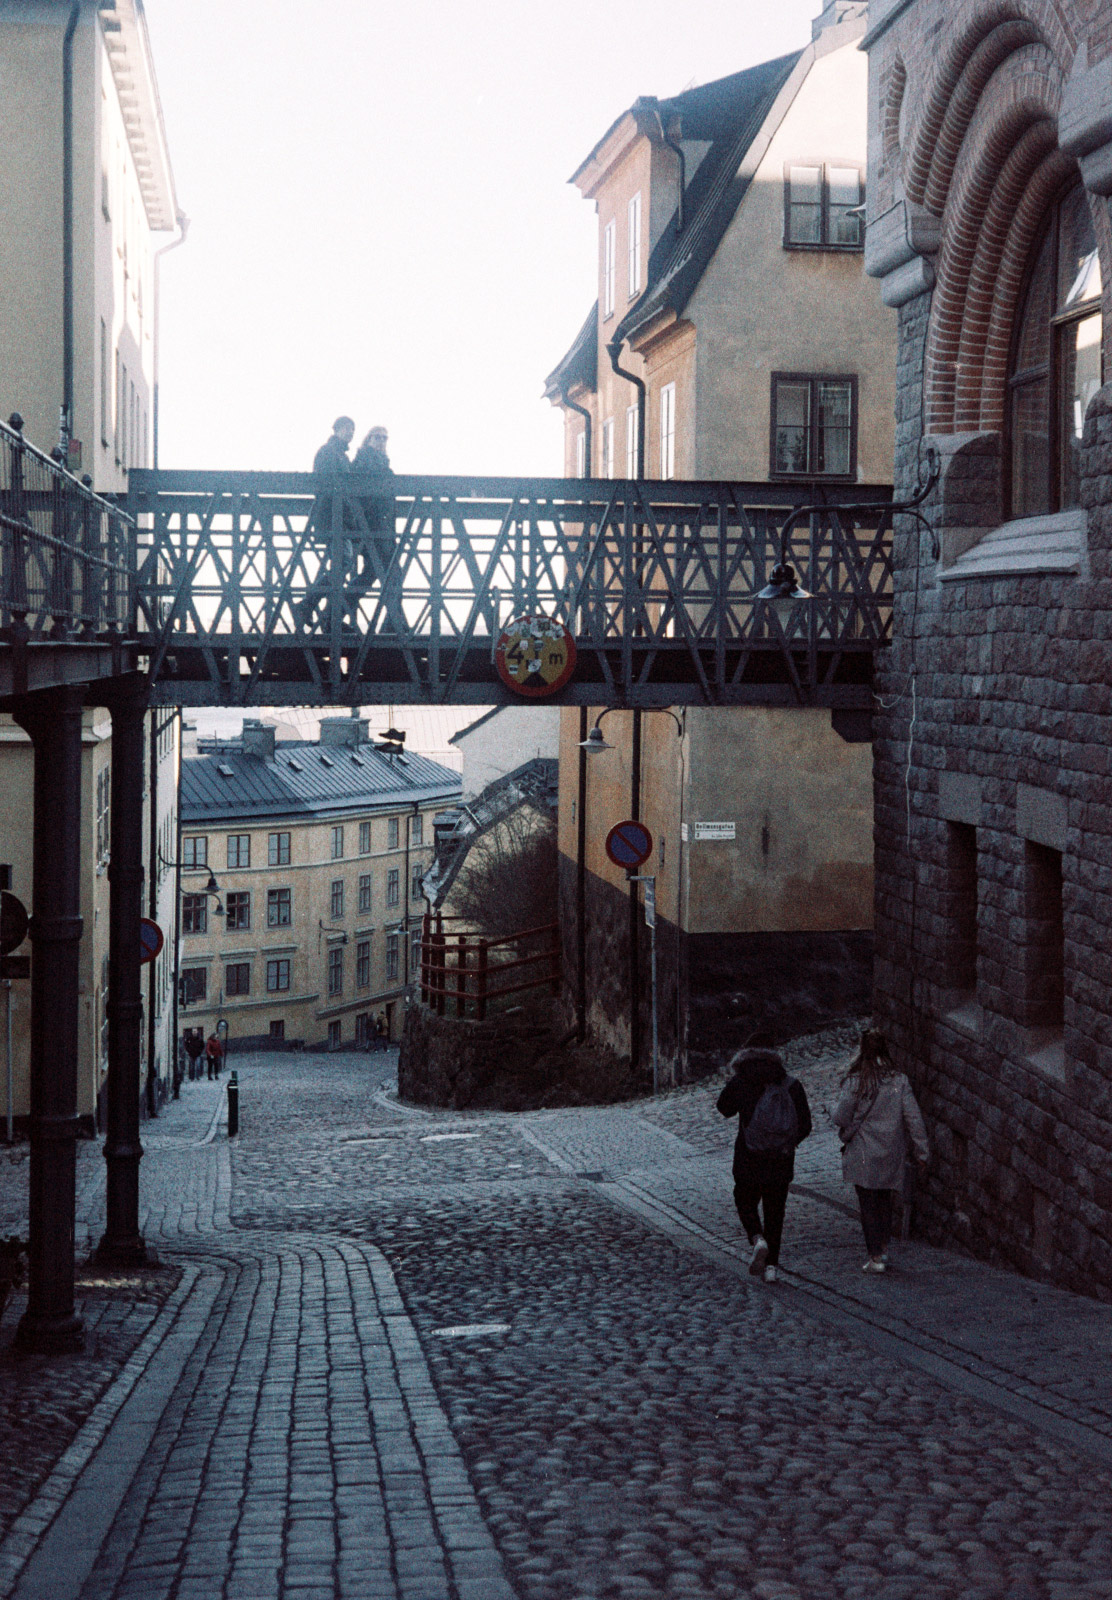 Bridge over cobbled street